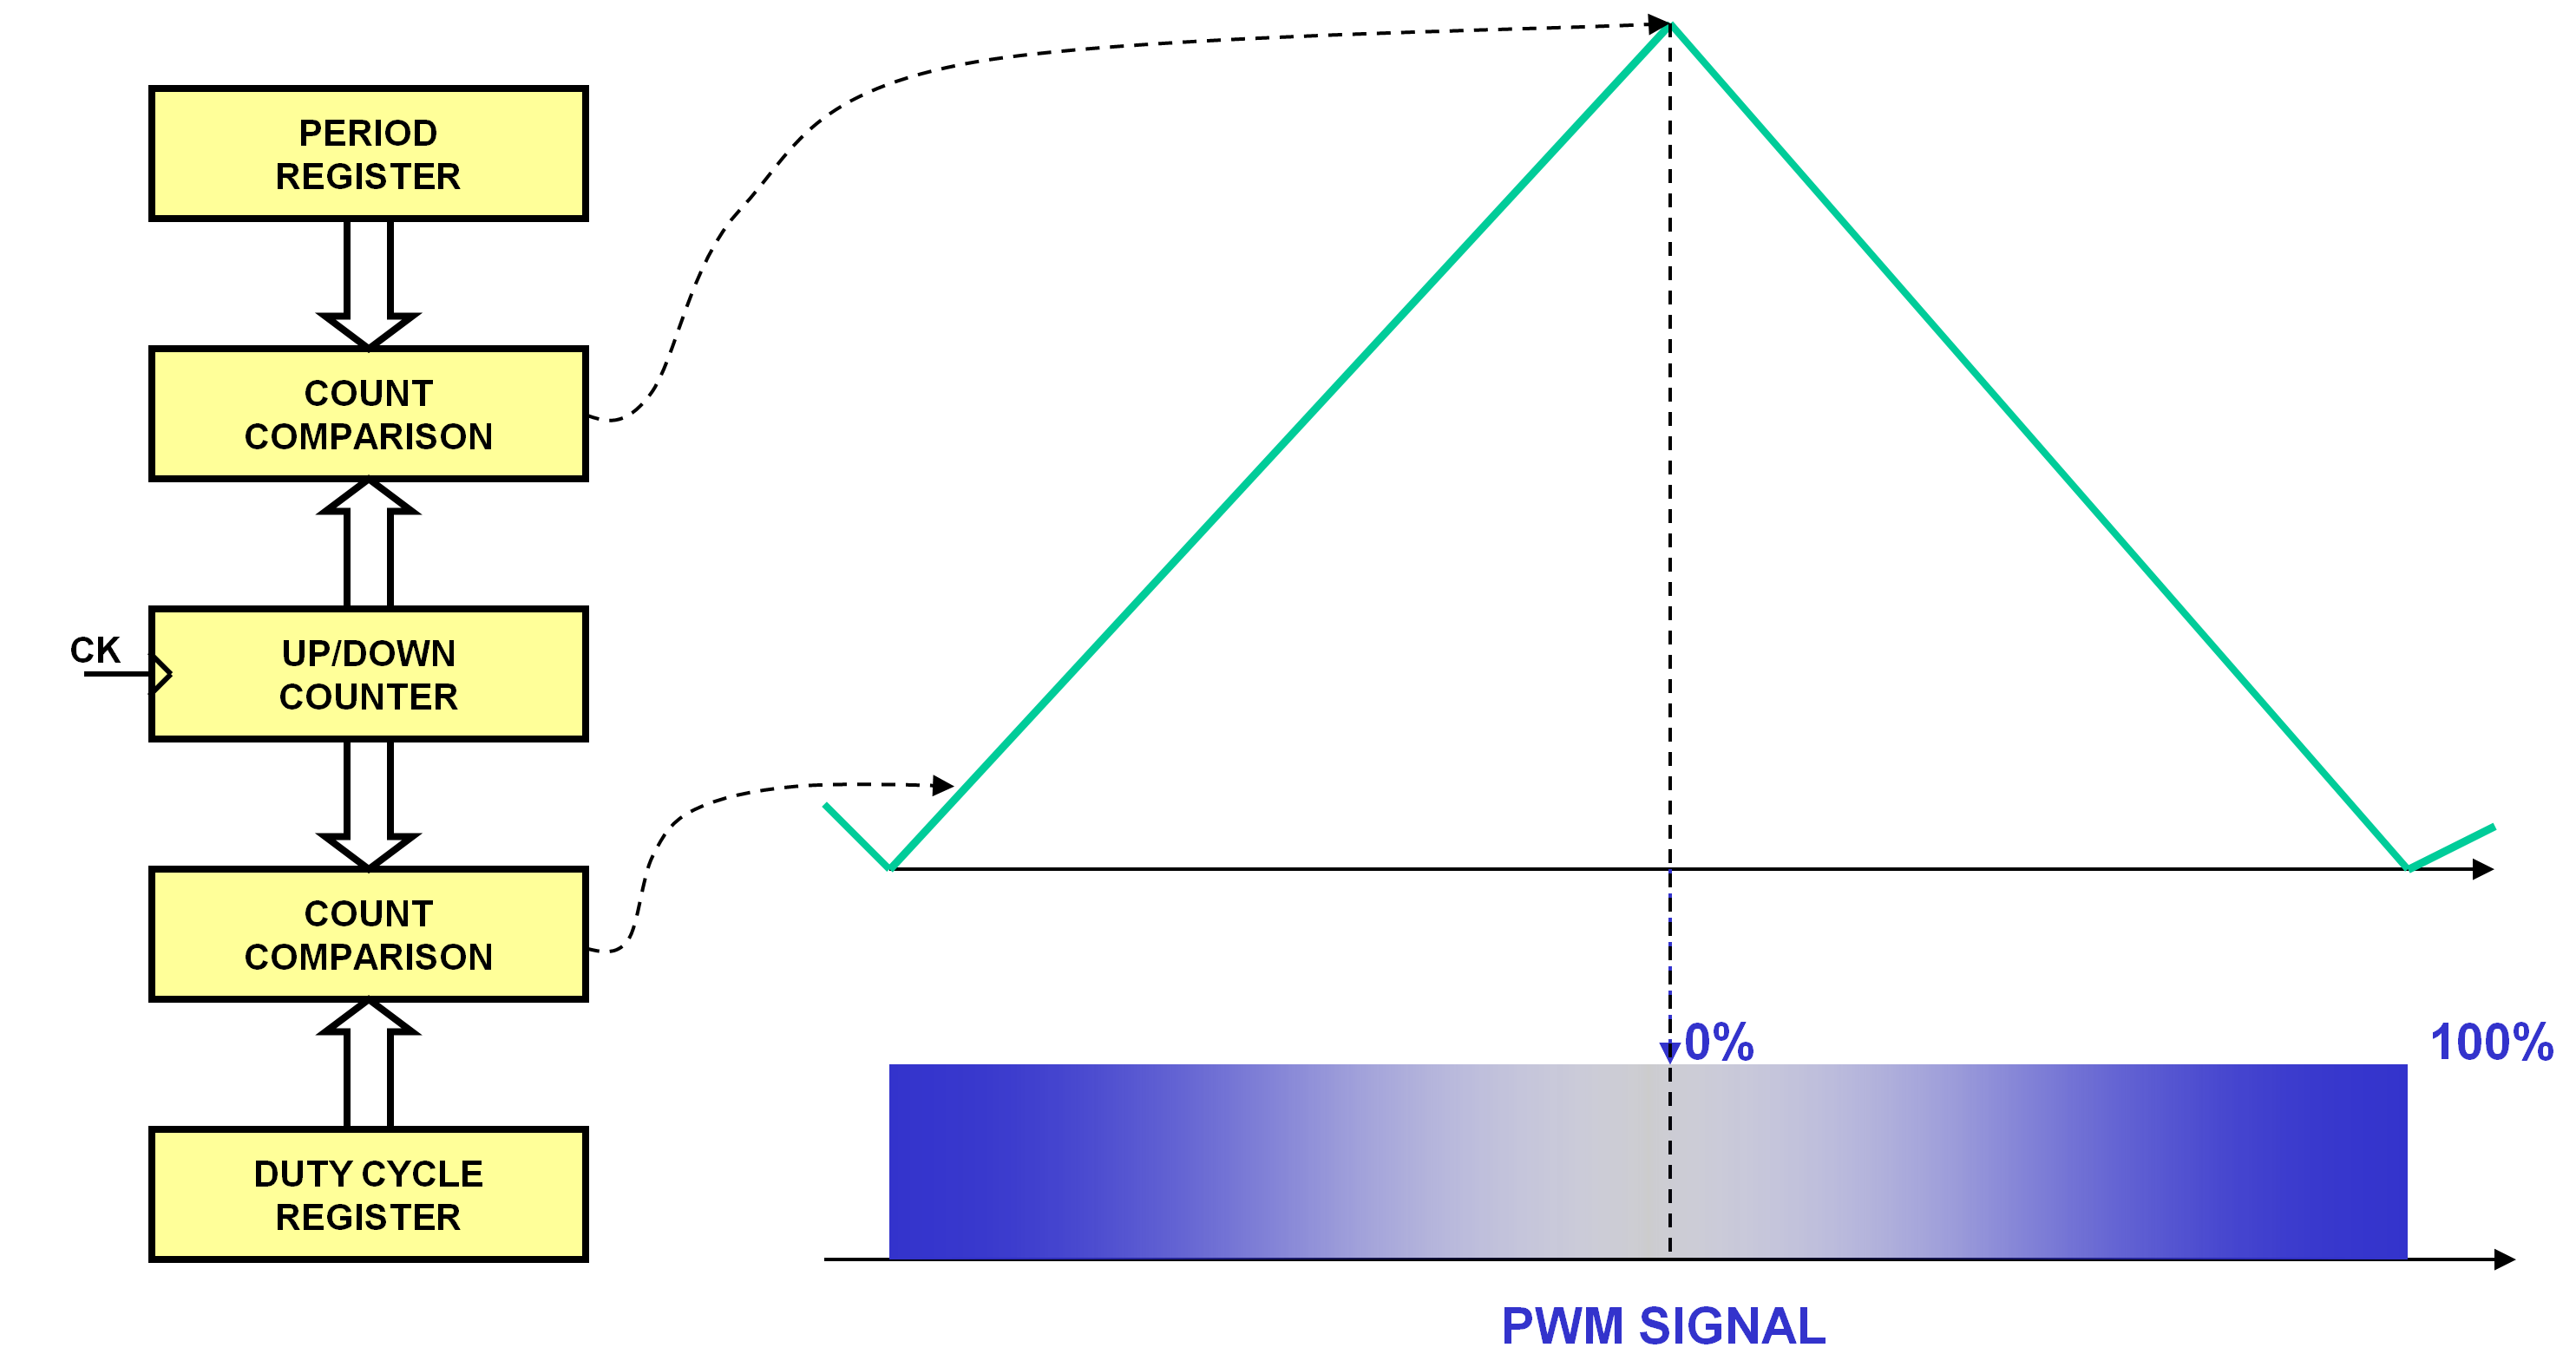 pwm-center-aligned-edge.png